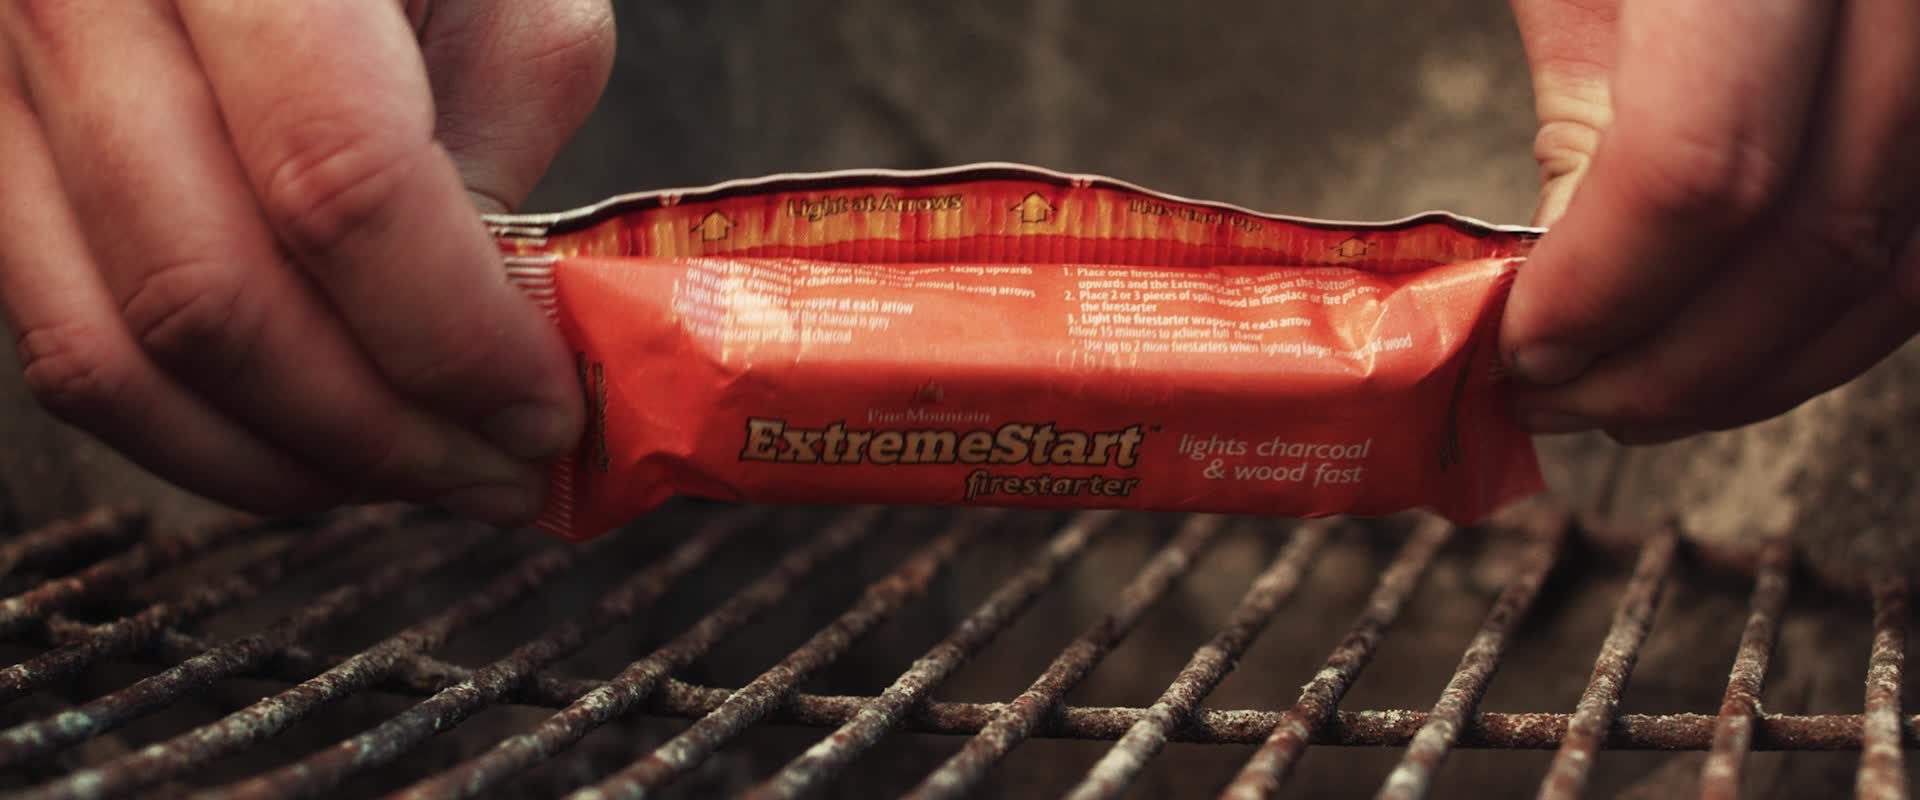 The perfect tailgate starts with the new Pine Mountain ExtremeStart Firestarter.